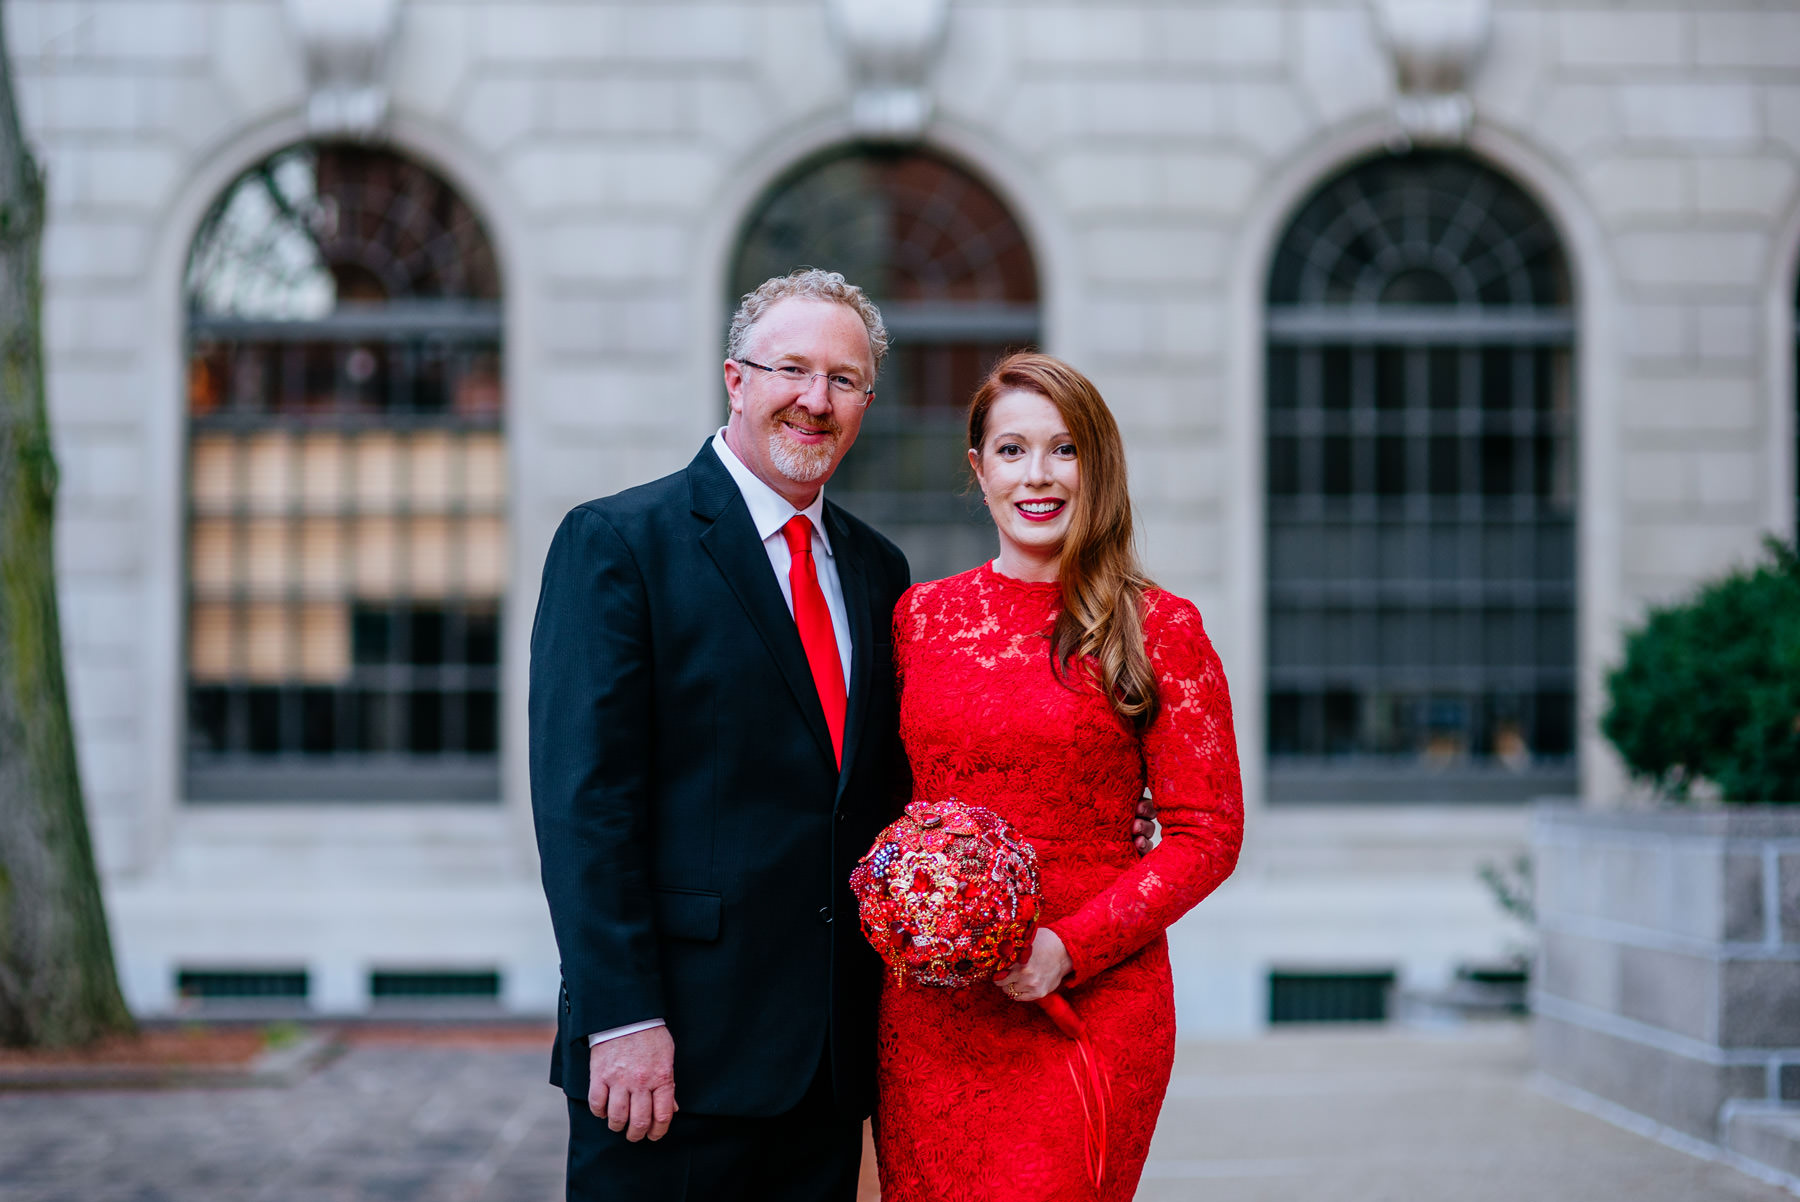 downtown charleston wv wedding portraits